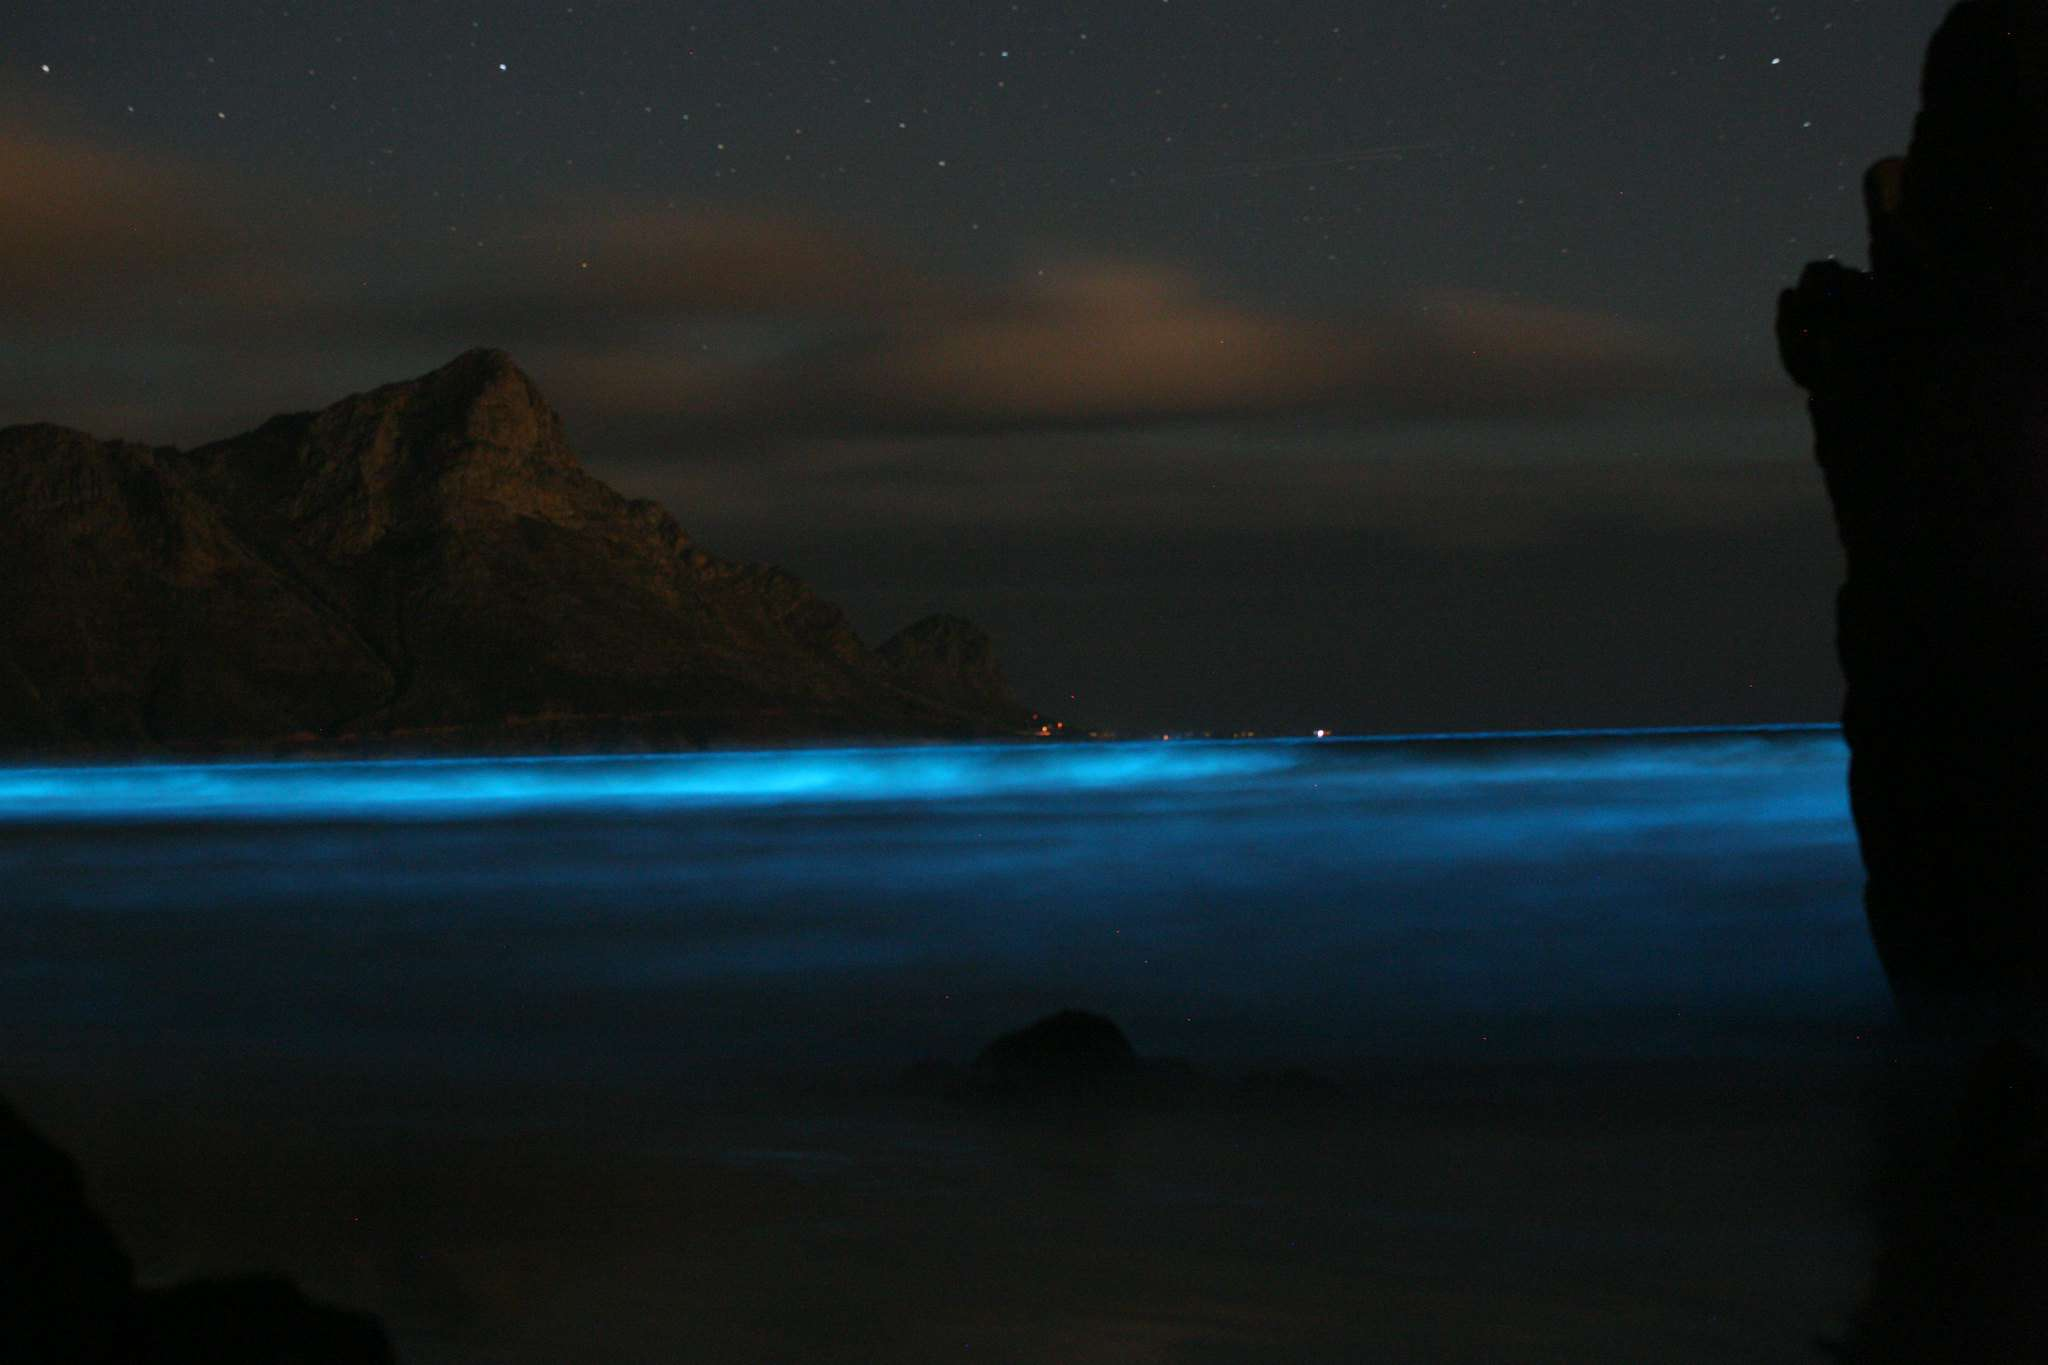 blue water from bioluminescence